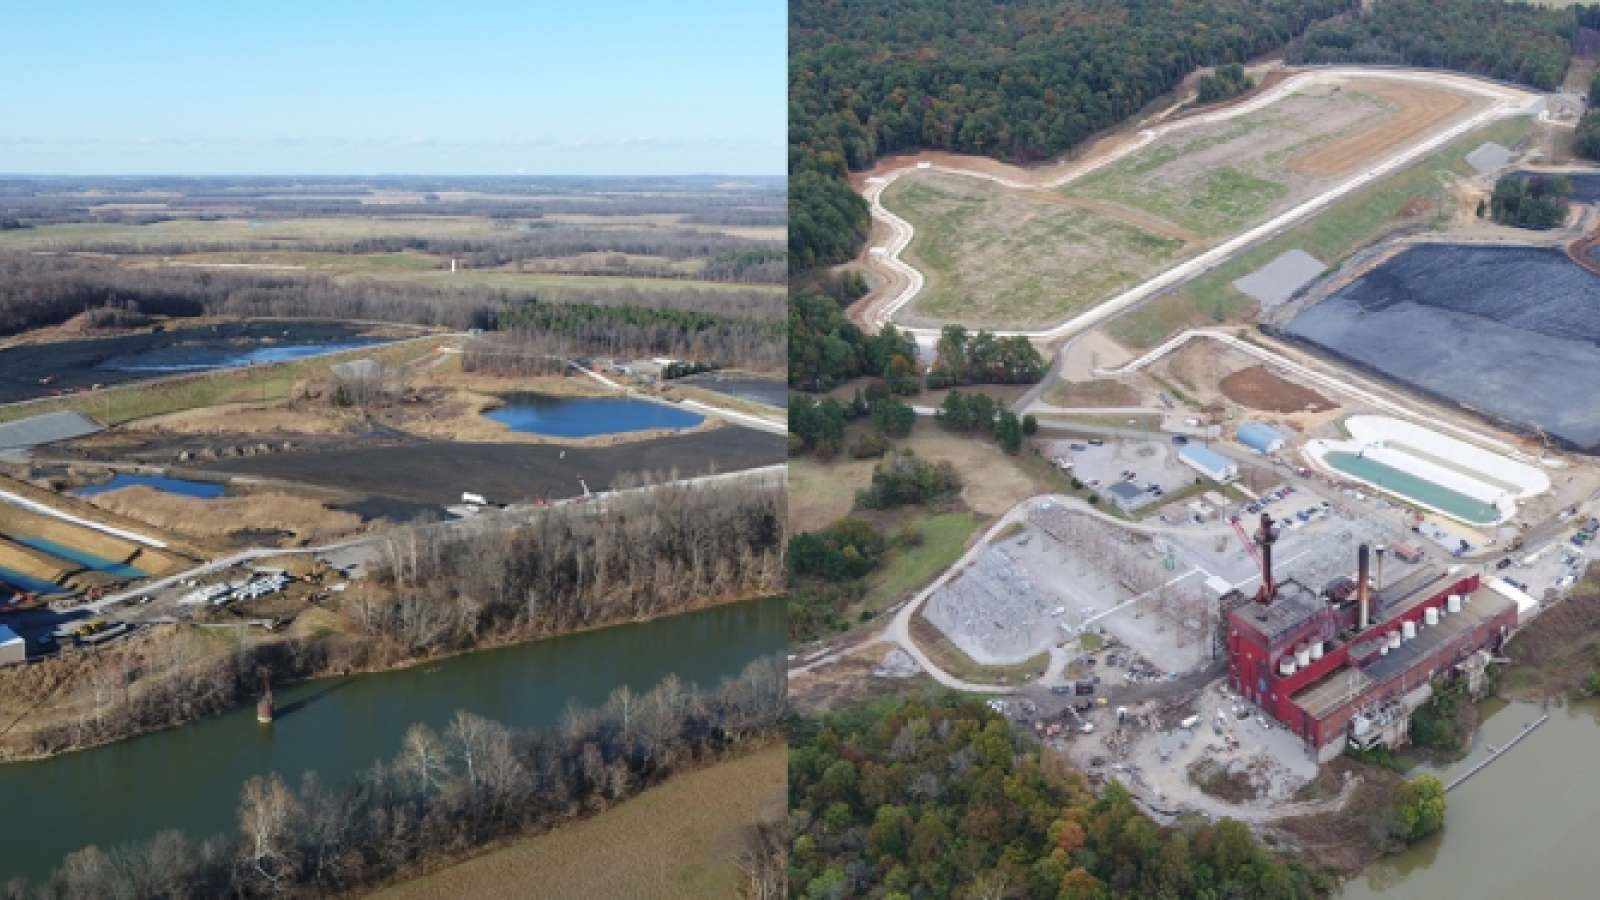 aerial views of ash pond being closed